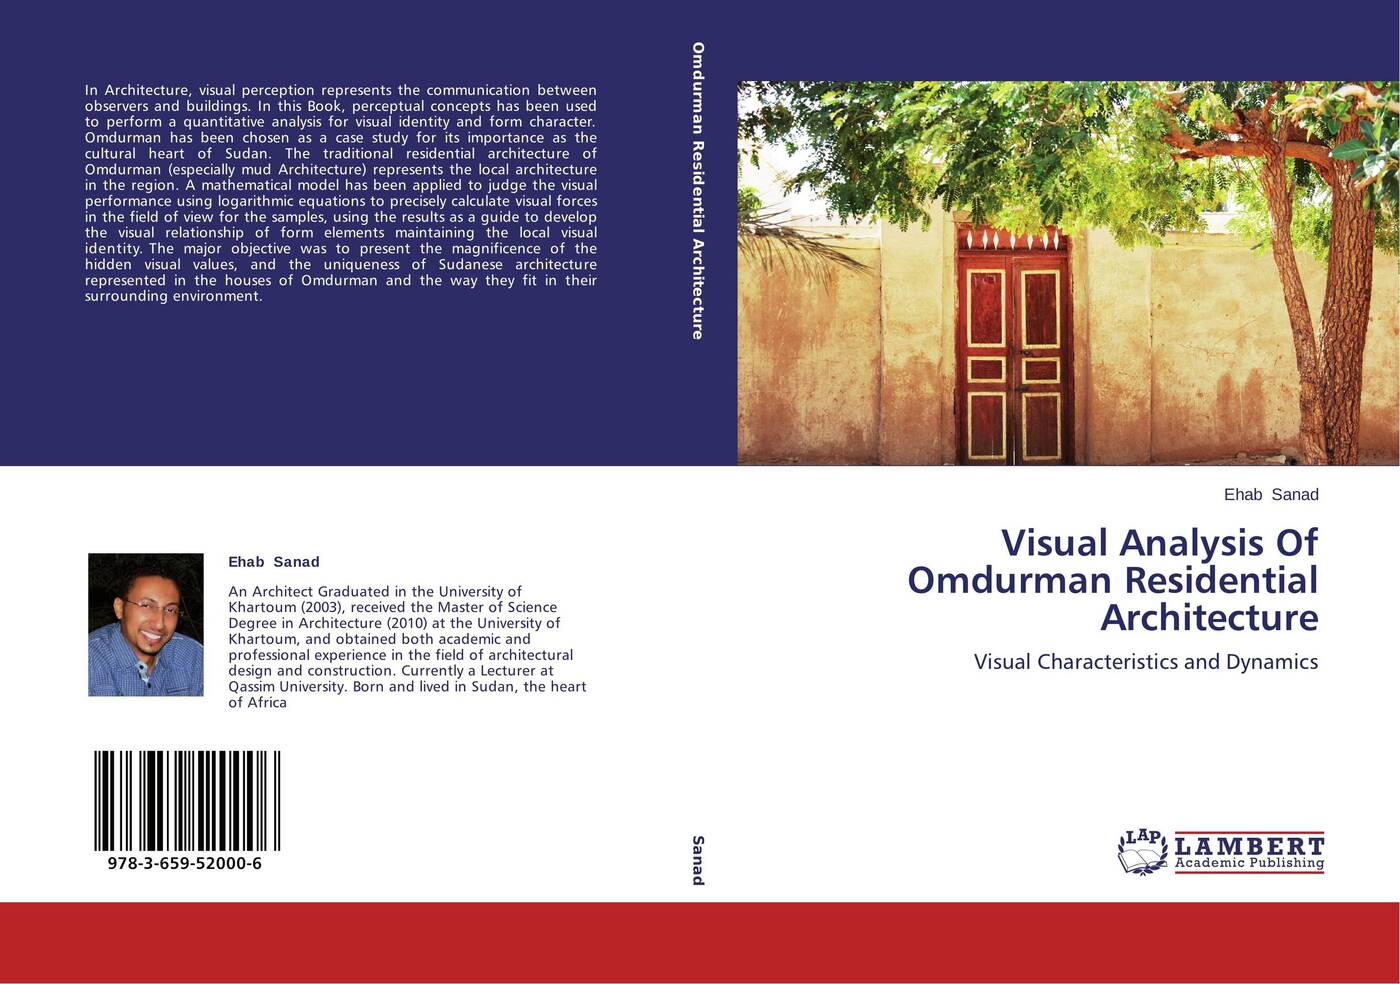 Ehab Sanad Visual Analysis Of Omdurman Residential Architecture michael archer d the forex chartist companion a visual approach to technical analysis